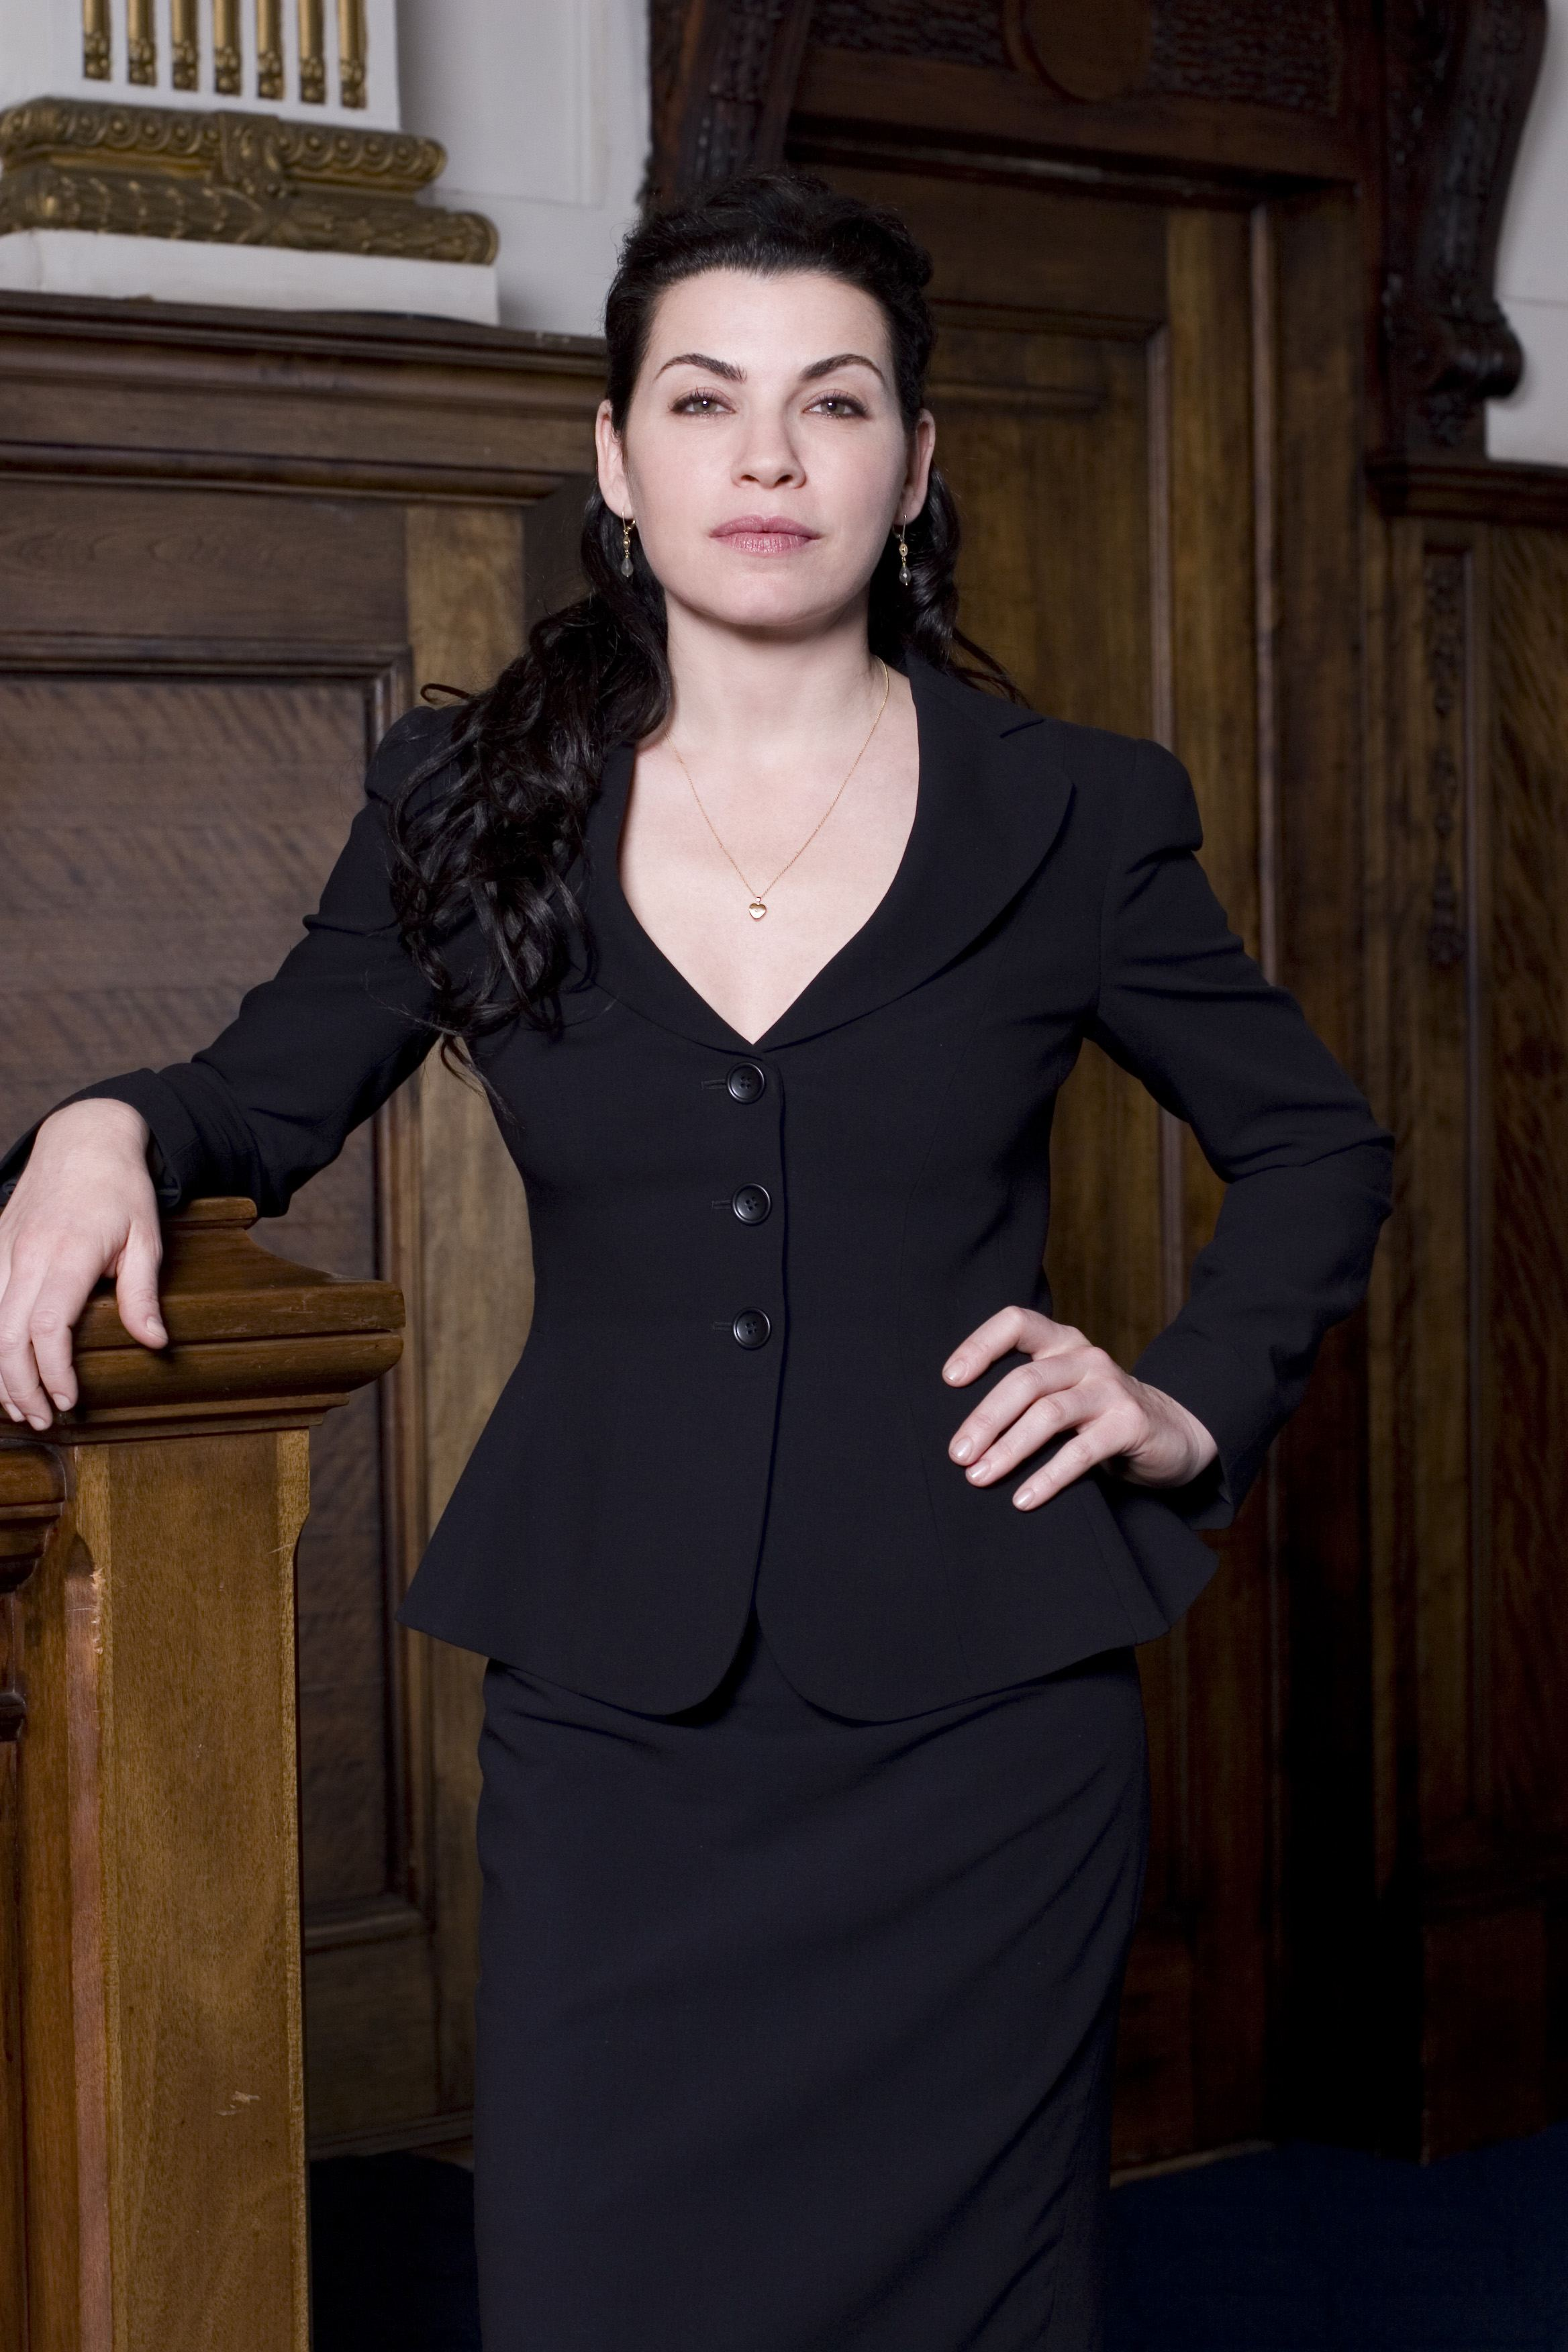 Julianna Margulies images Canterbury's Law promos HD ...